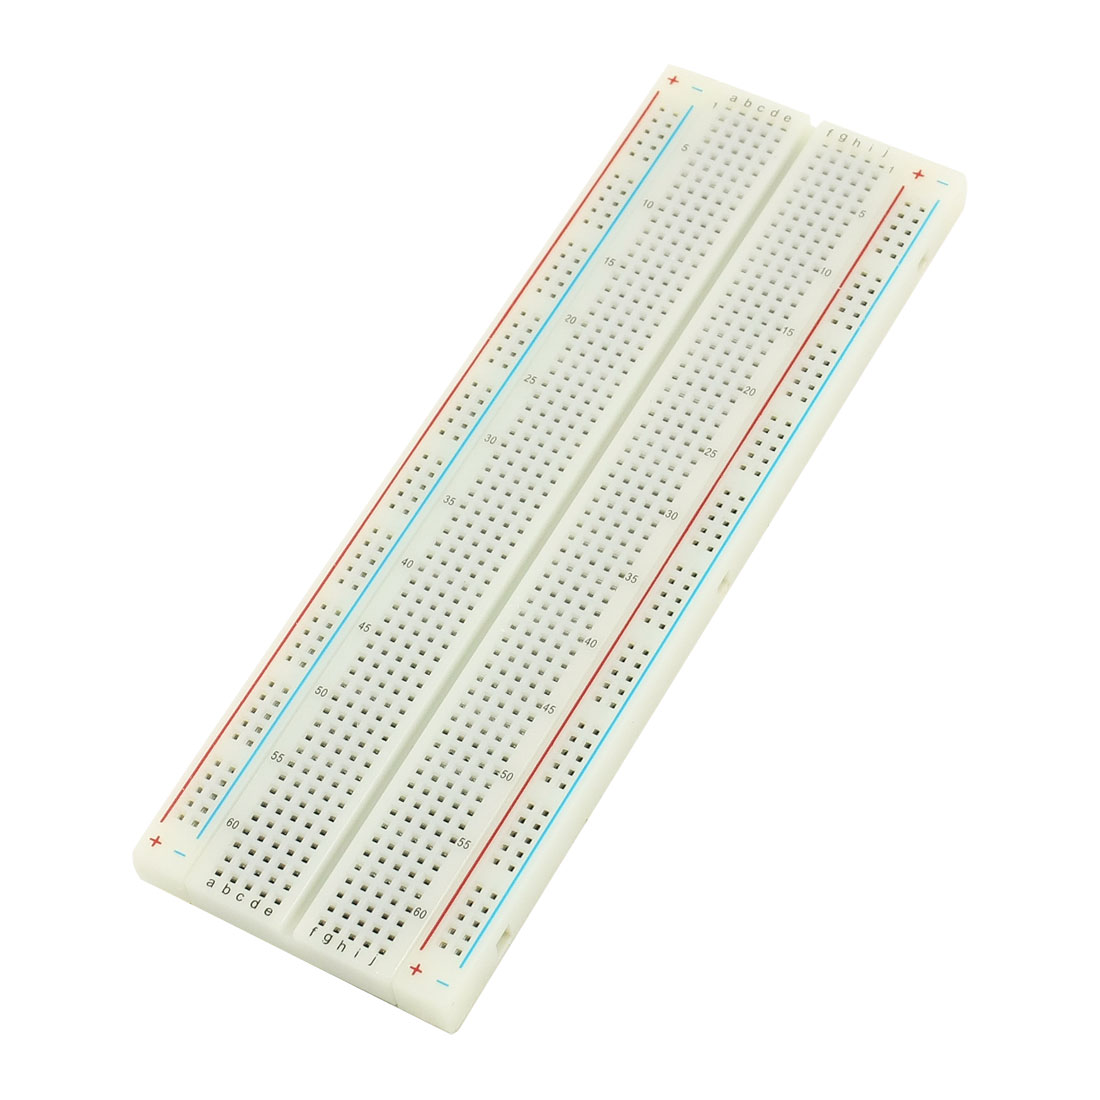 165mmx55mmx8mm 830Pcs Tiepoint Electronic Circuit Solderless Breadboard